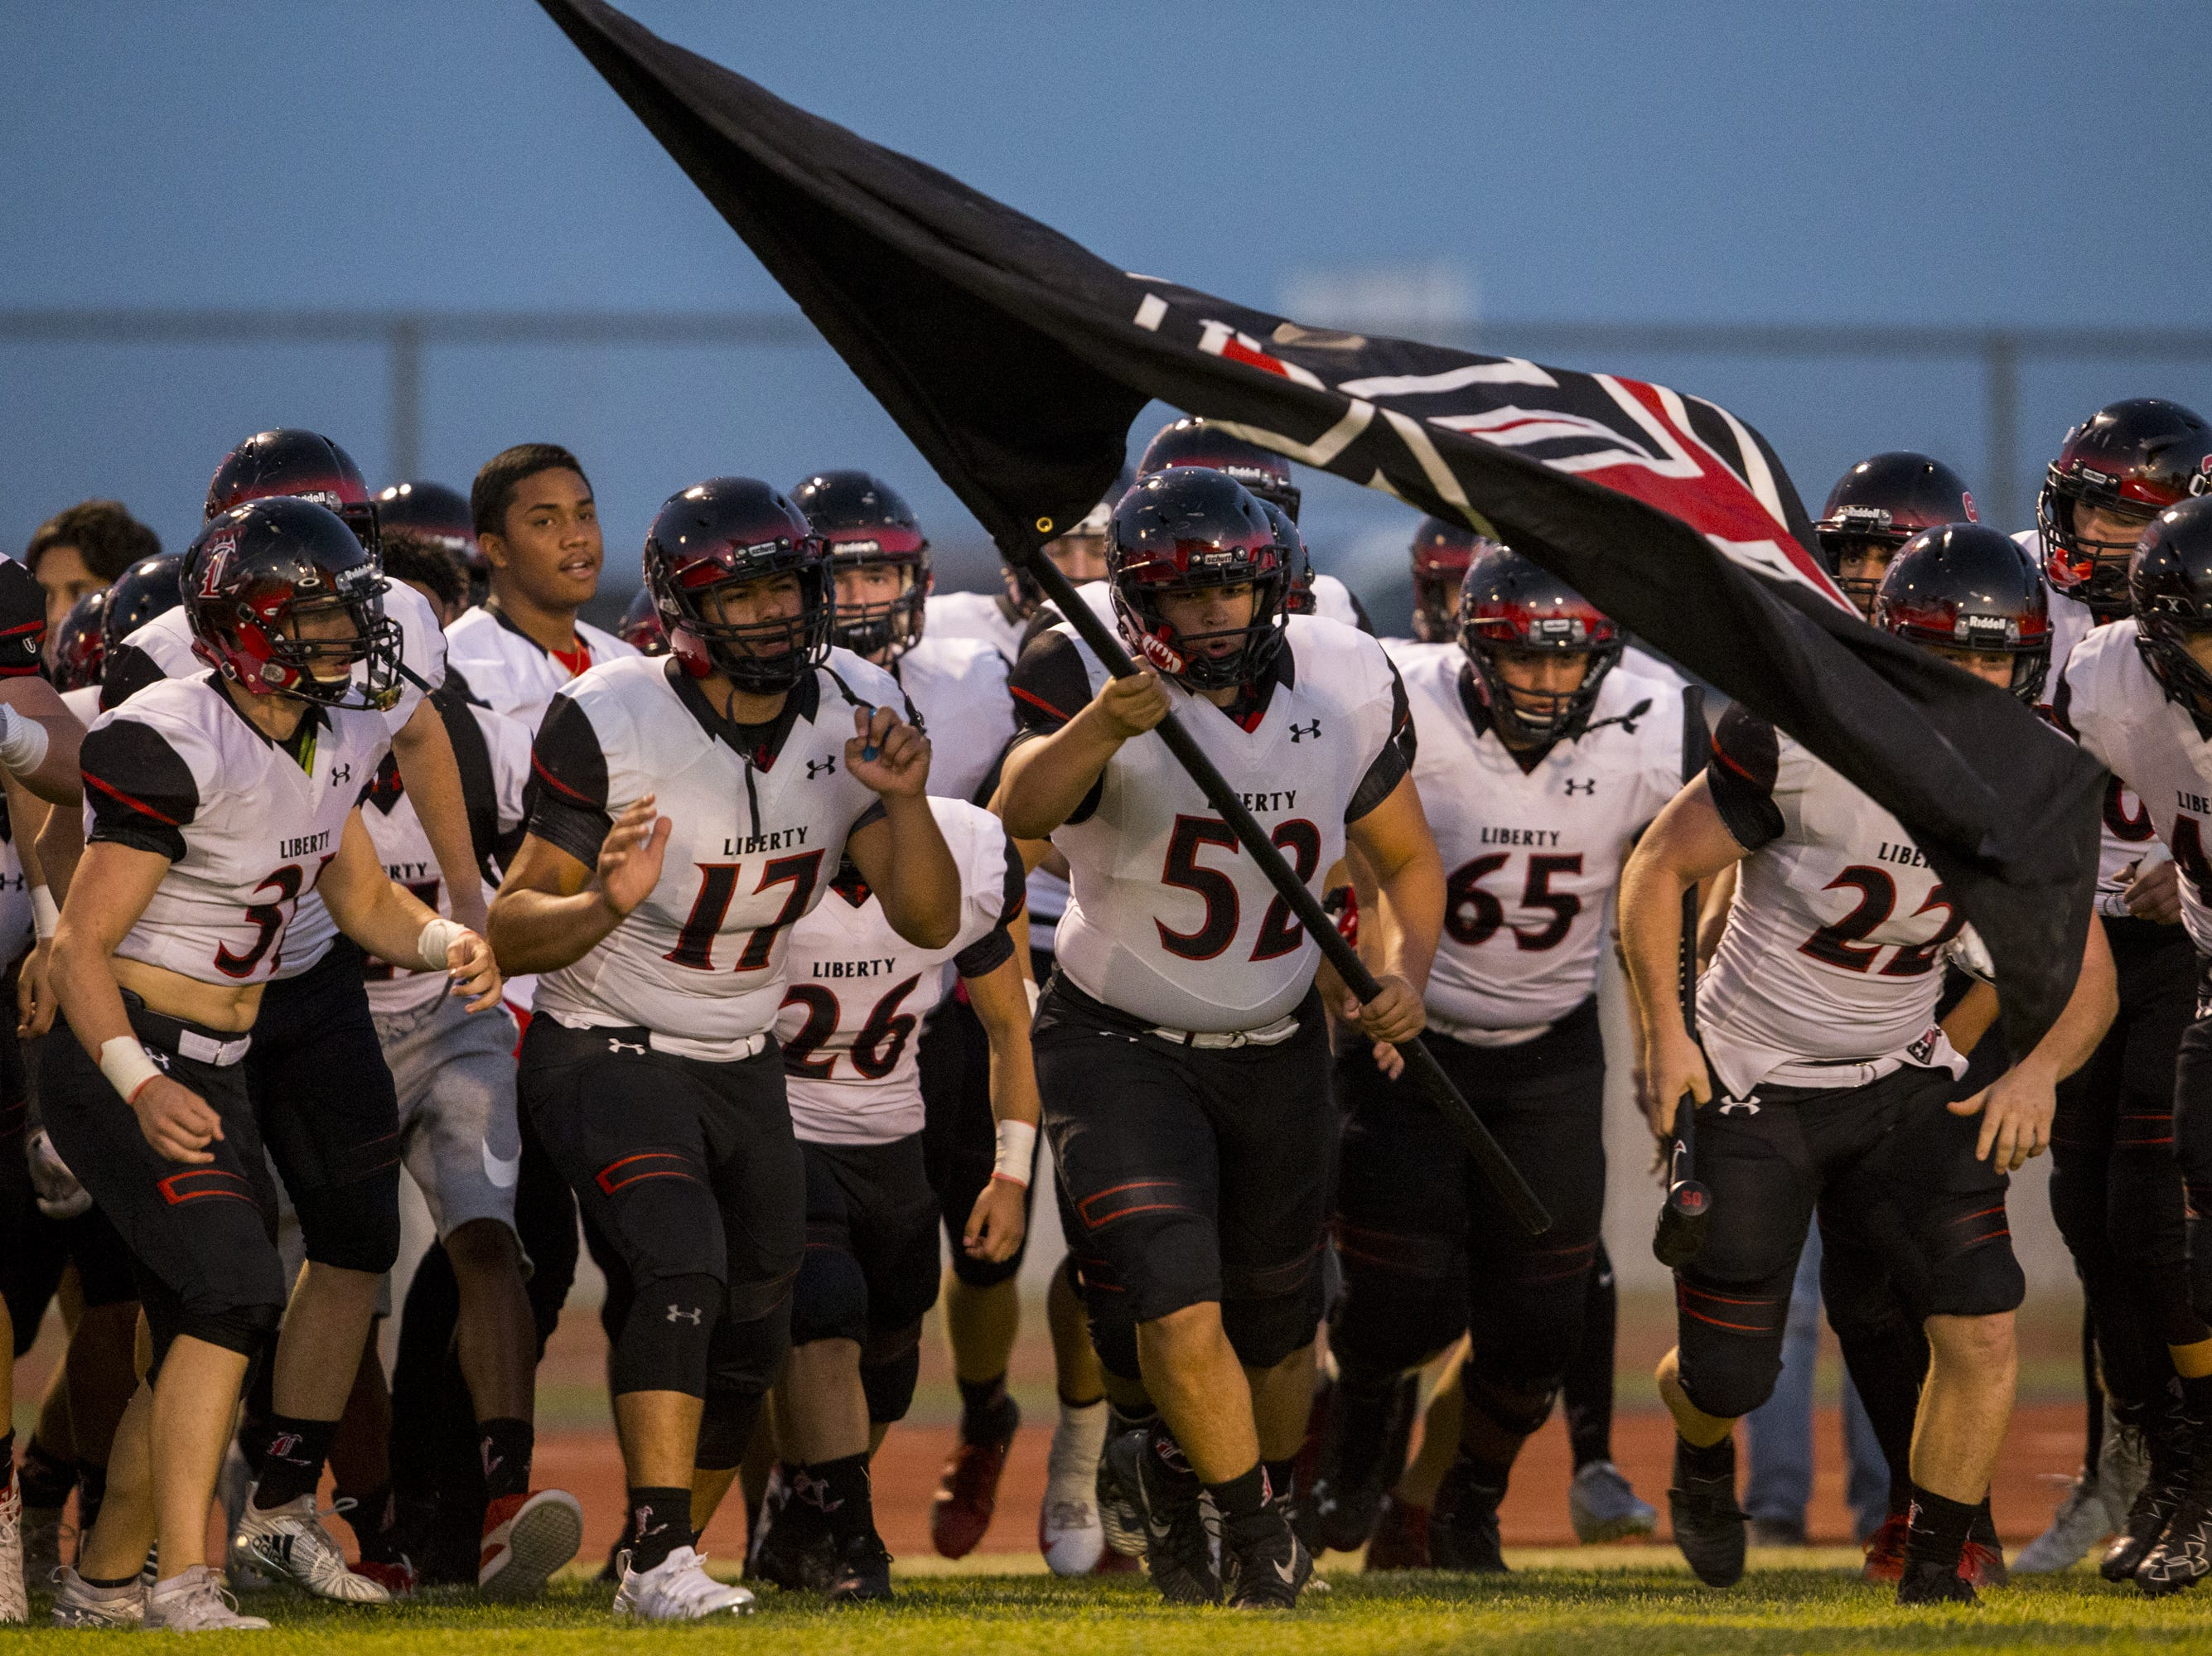 Liberty takes the field before the game against Desert Ridge on Friday, Sept. 7, 2018, at Desert Ridge High School in Mesa, Ariz.  #azhsfb